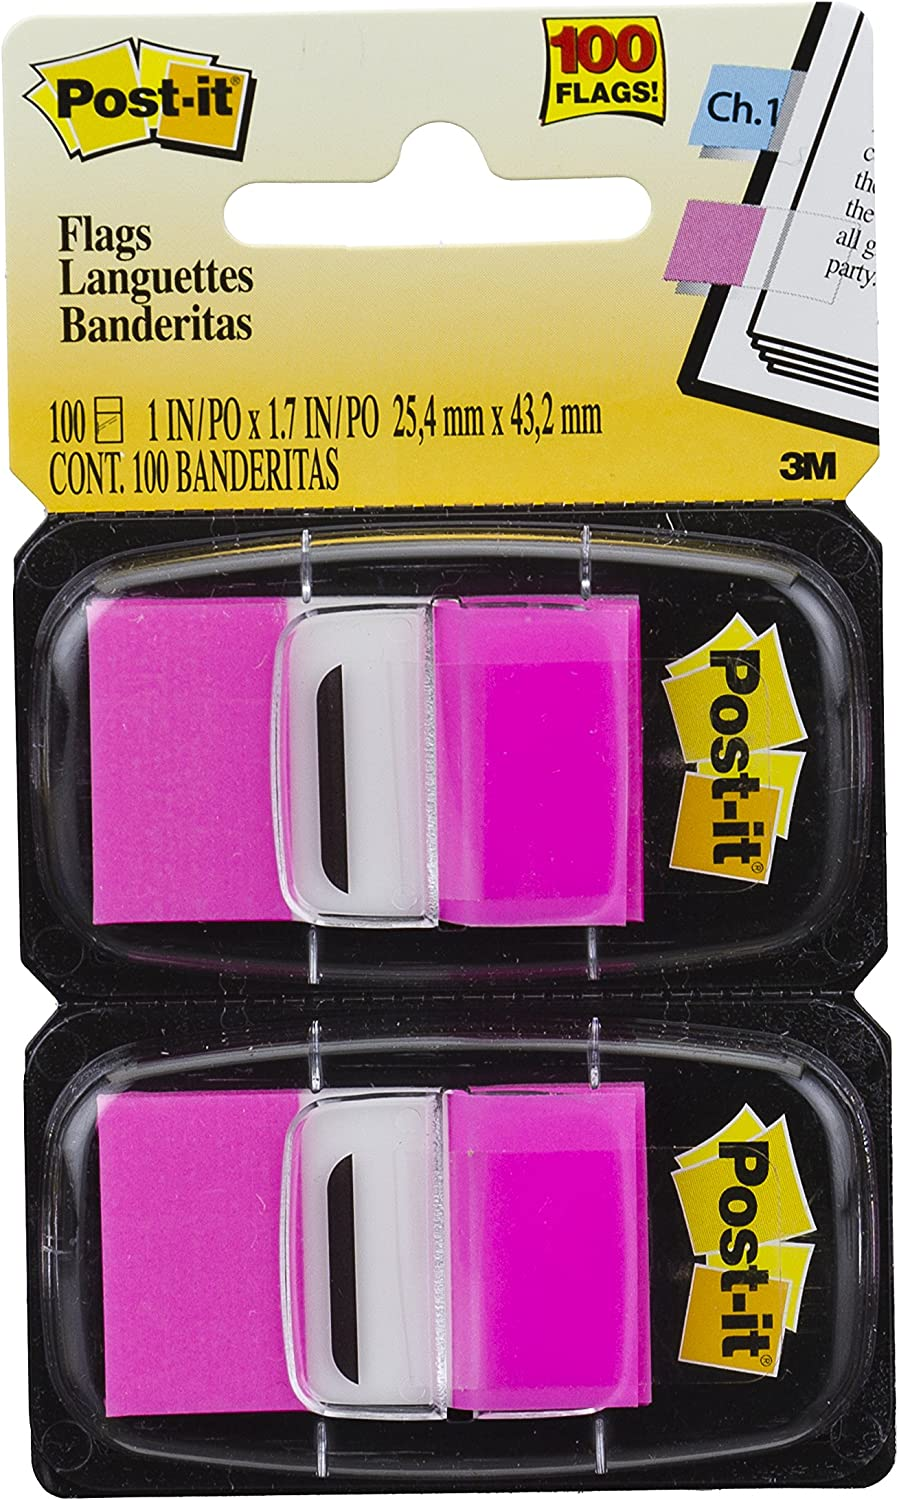 100 Flags Bright Pink Standard Page Flags in Dispenser 1-Inch Wide